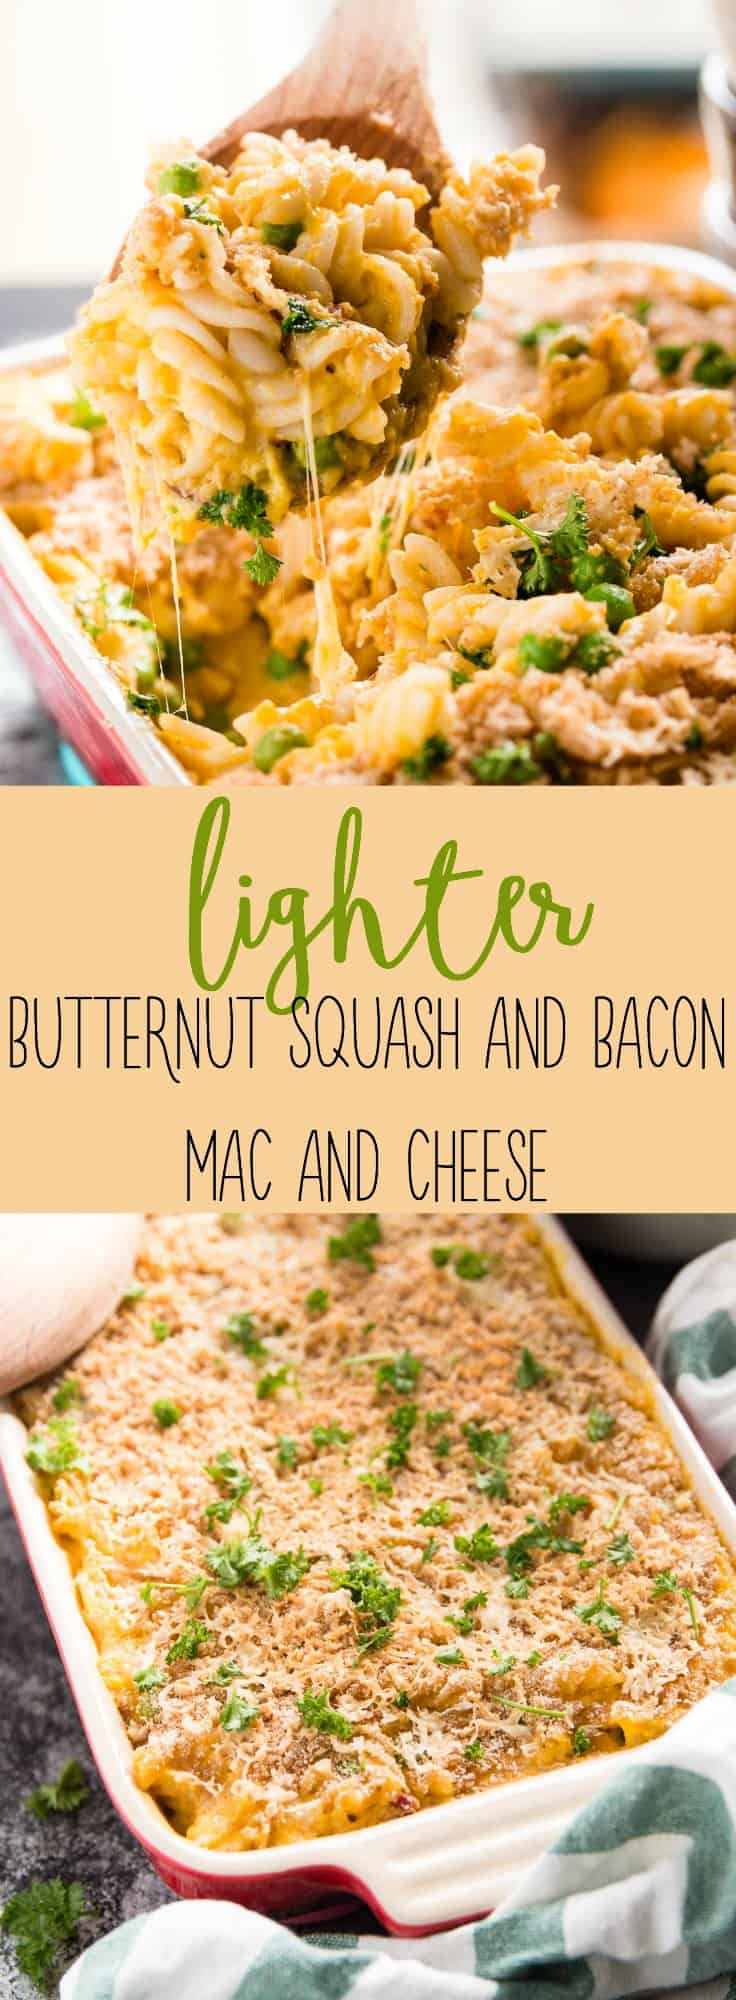 This is a wonderful fall flavored and Healthy Butternut Squash Mac and Cheese recipe - complete with bacon! | savorynothings.com